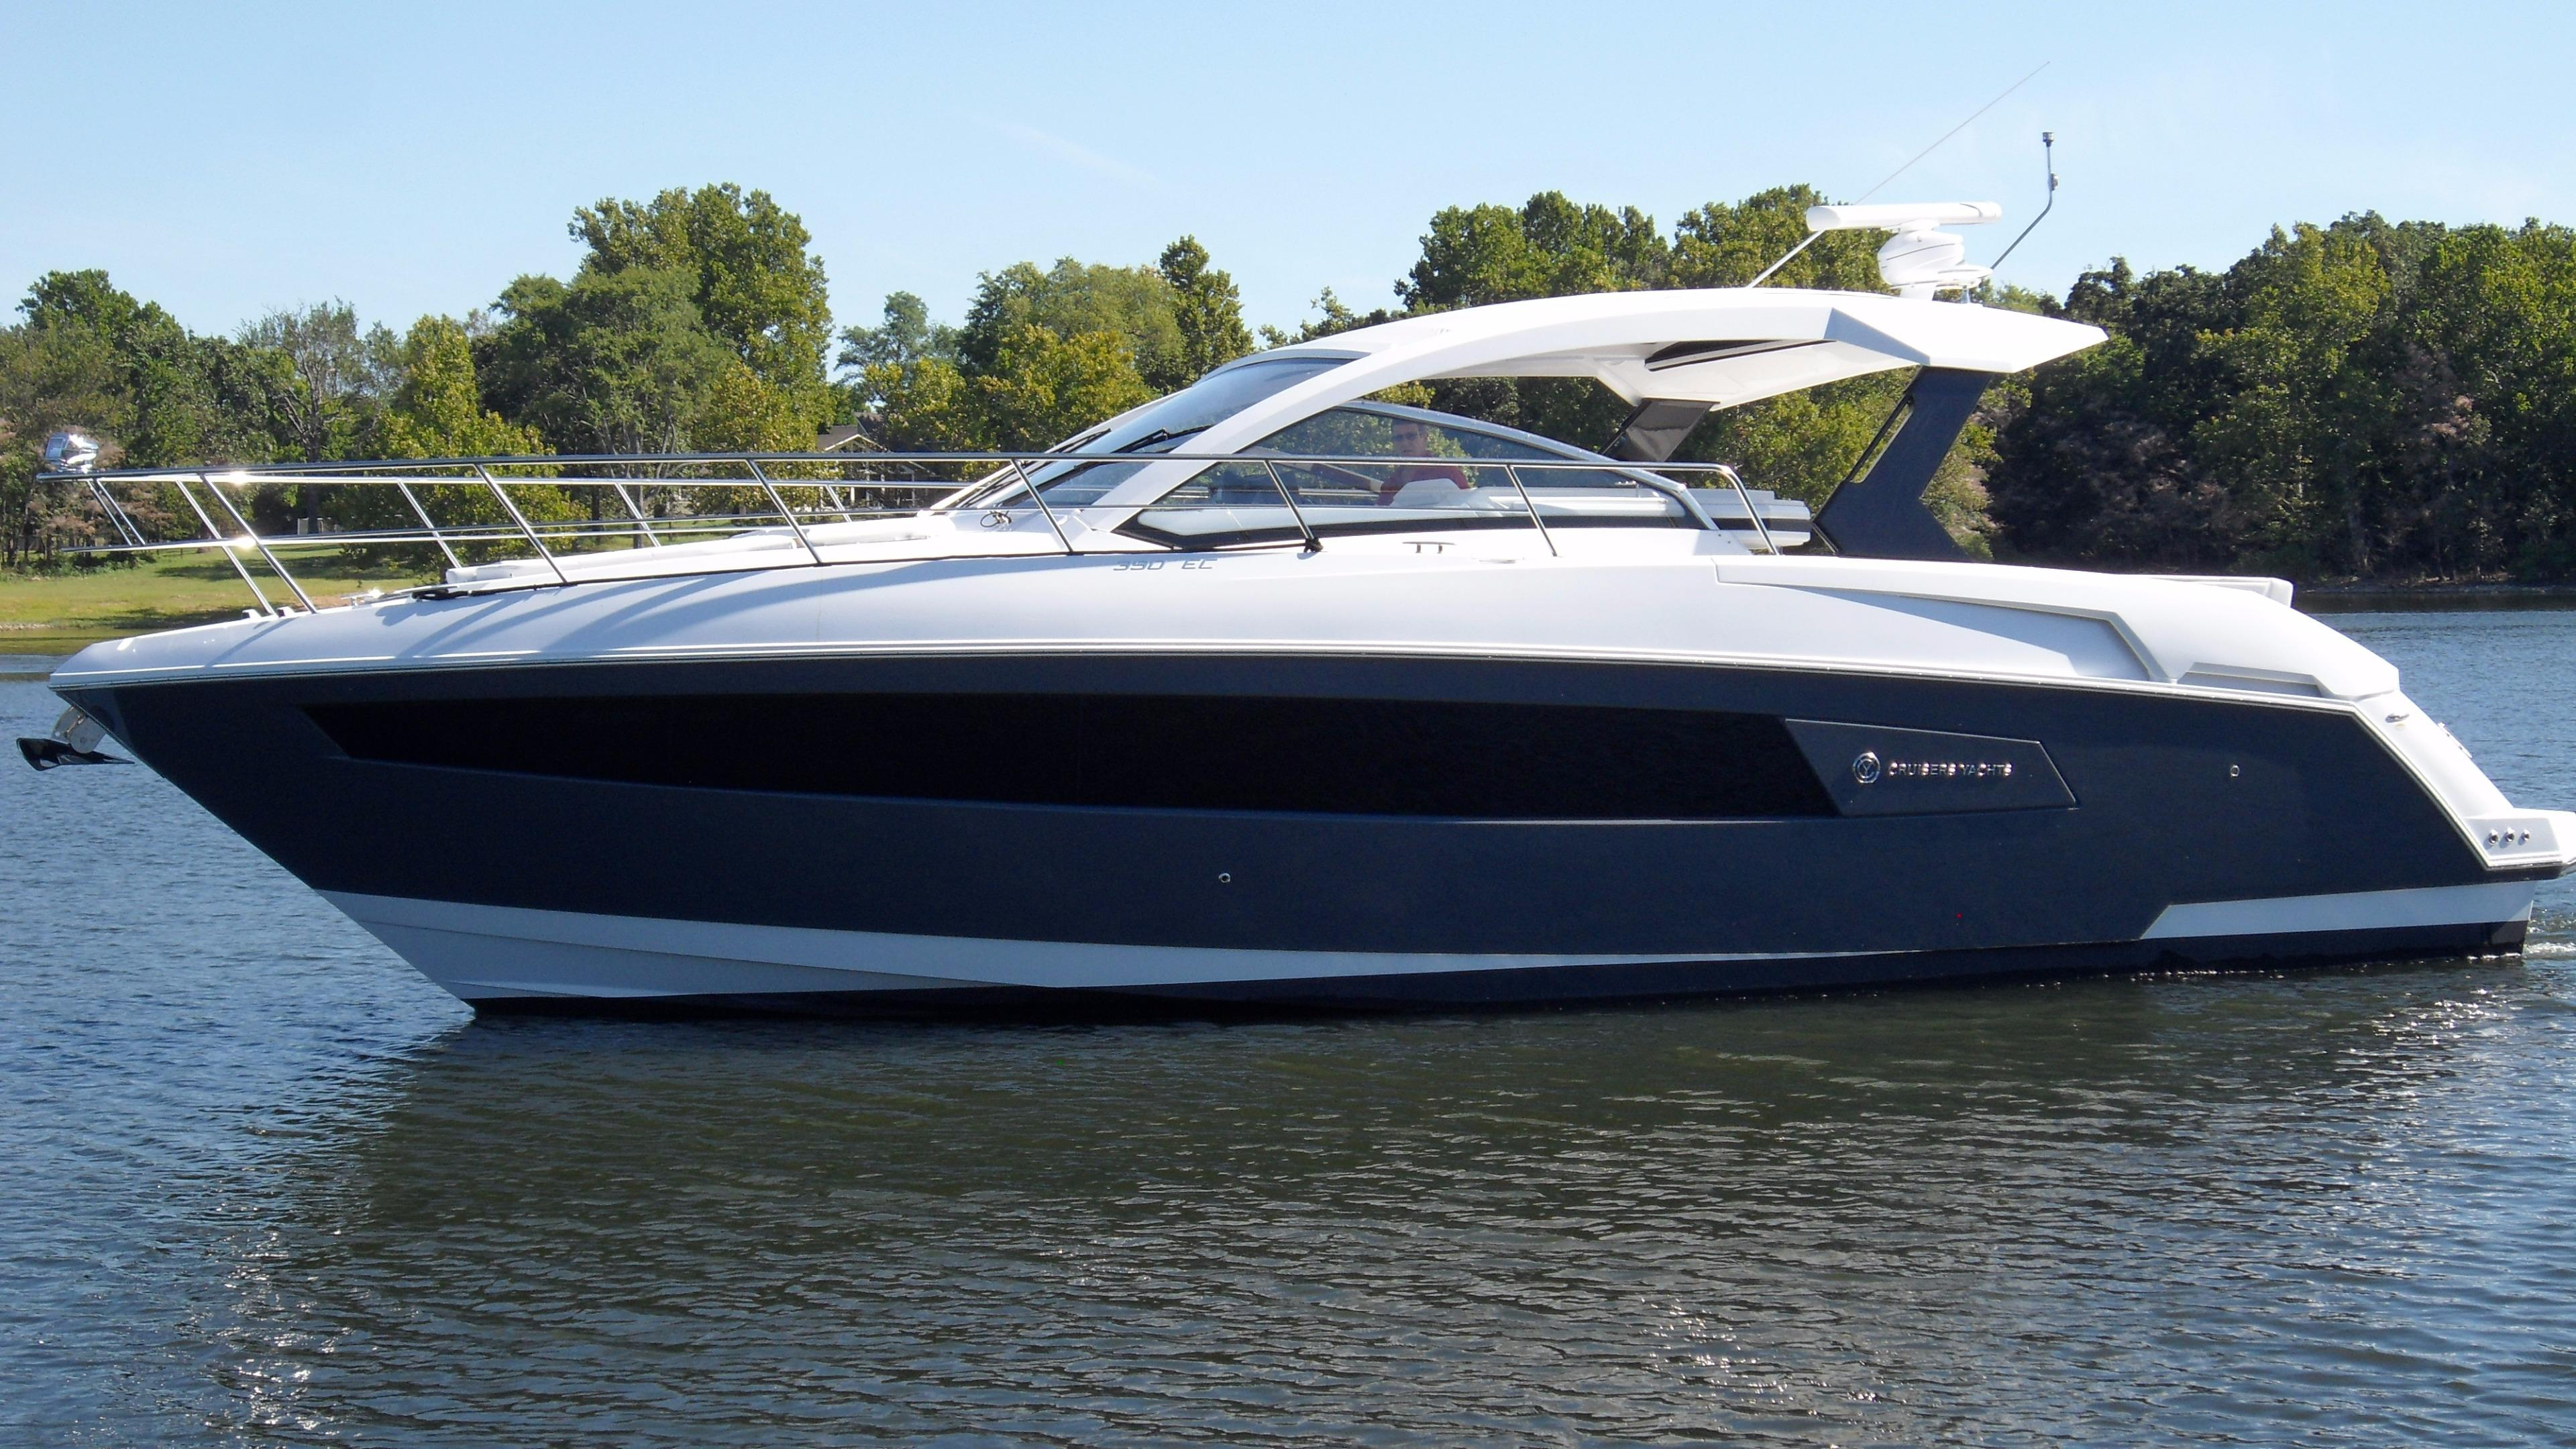 2016 Cruisers Yachts 390 Express Coupe Power Boat For Sale Www Yachtworld Com